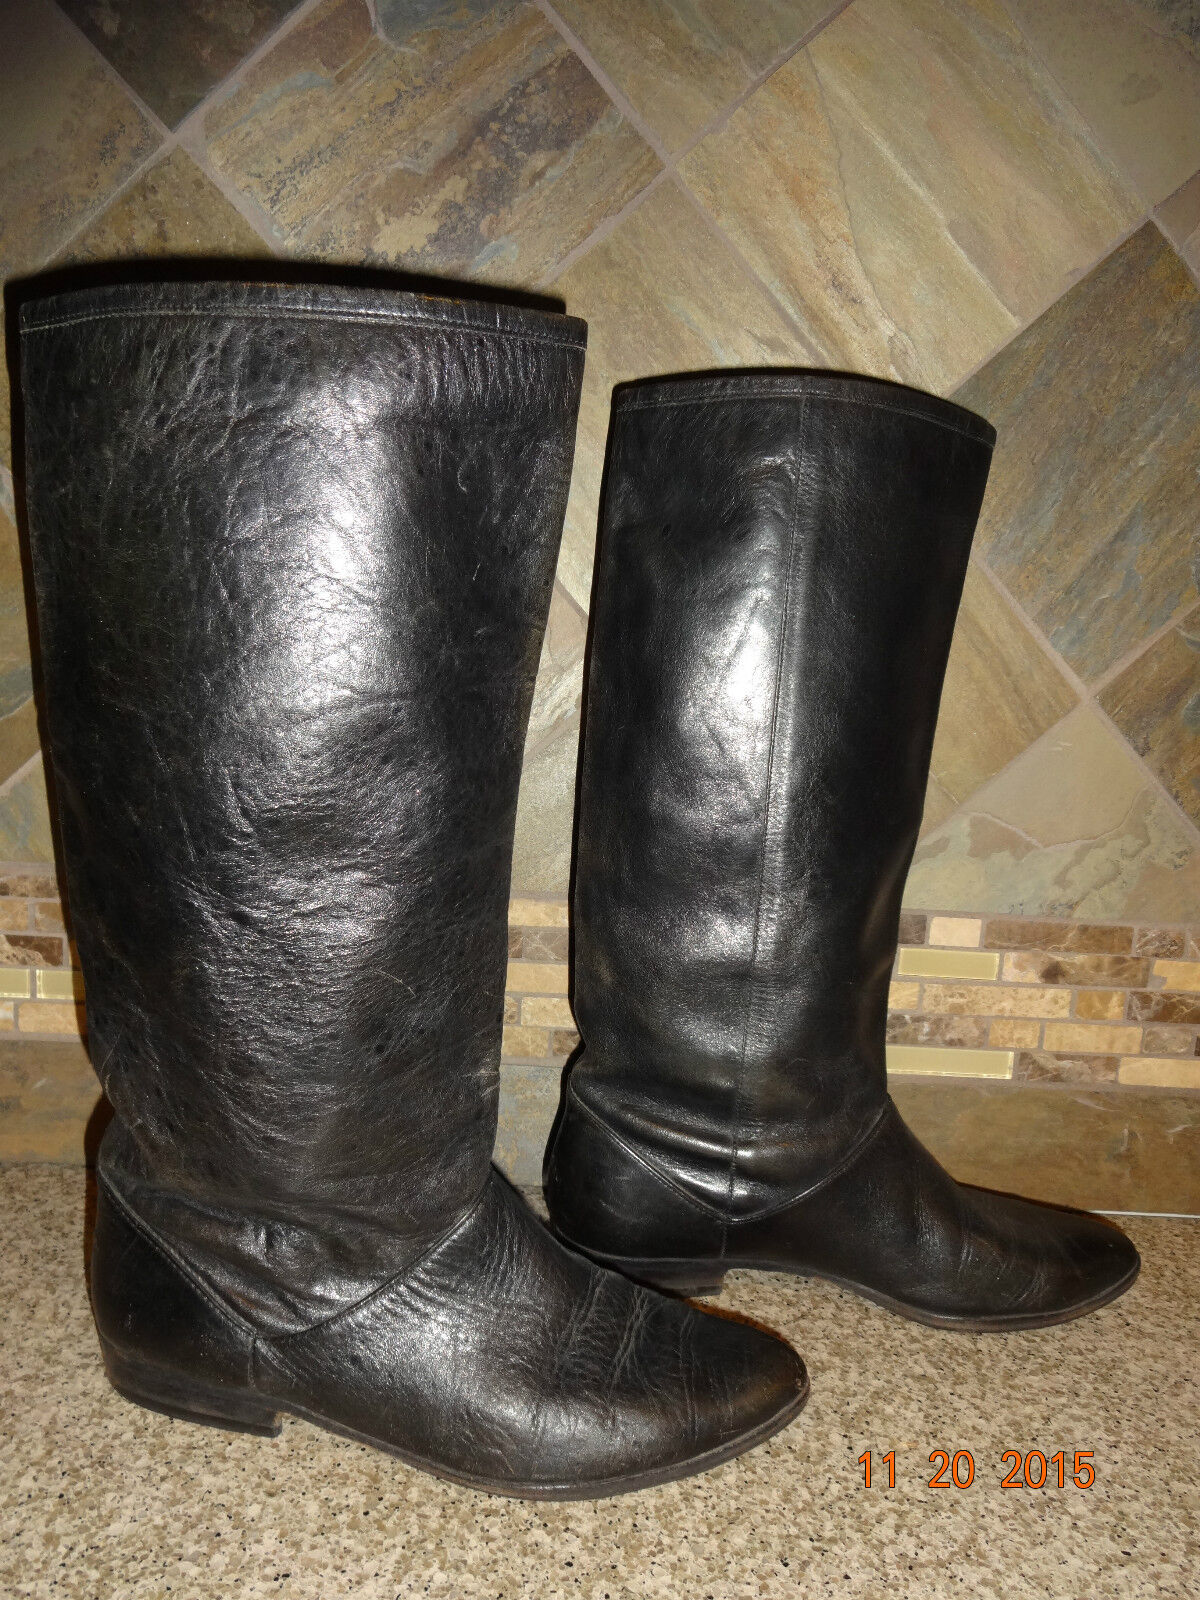 Vintage Womens UNISA Approx Sz 7-7.5 Black Leather Fashion Boots Flats